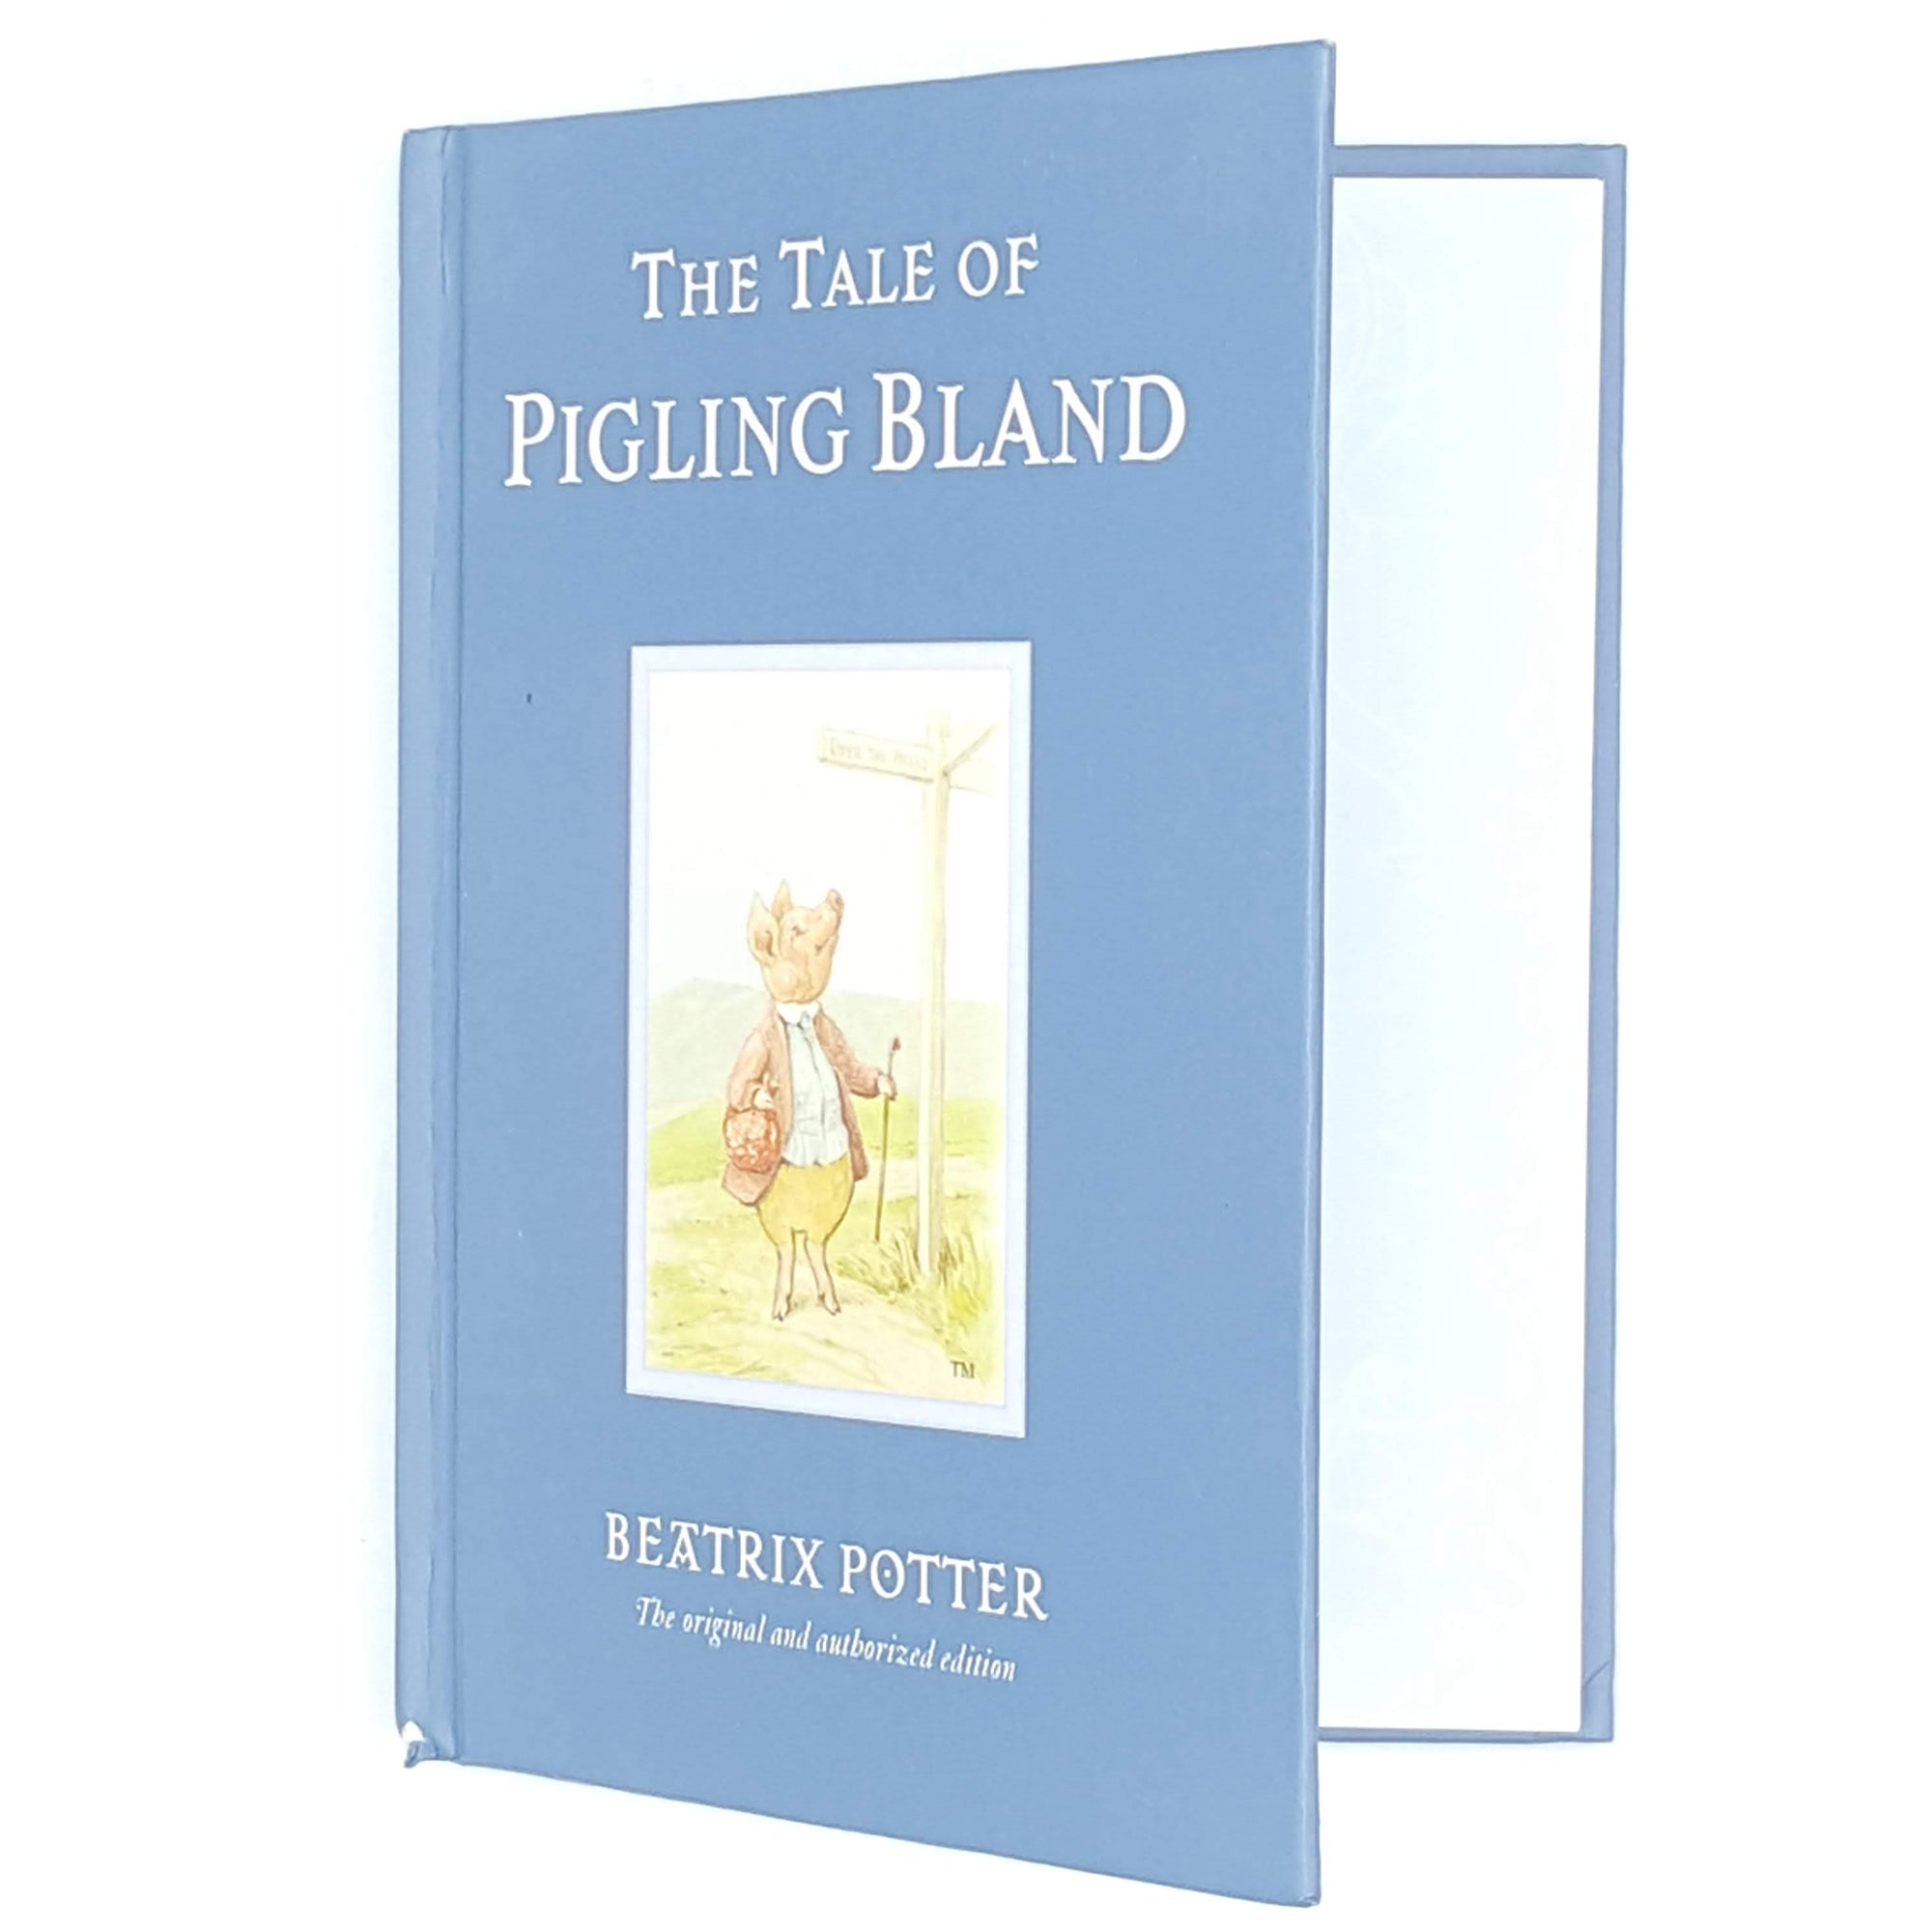 Beatrix Potter's The Tale of Pigling Bland